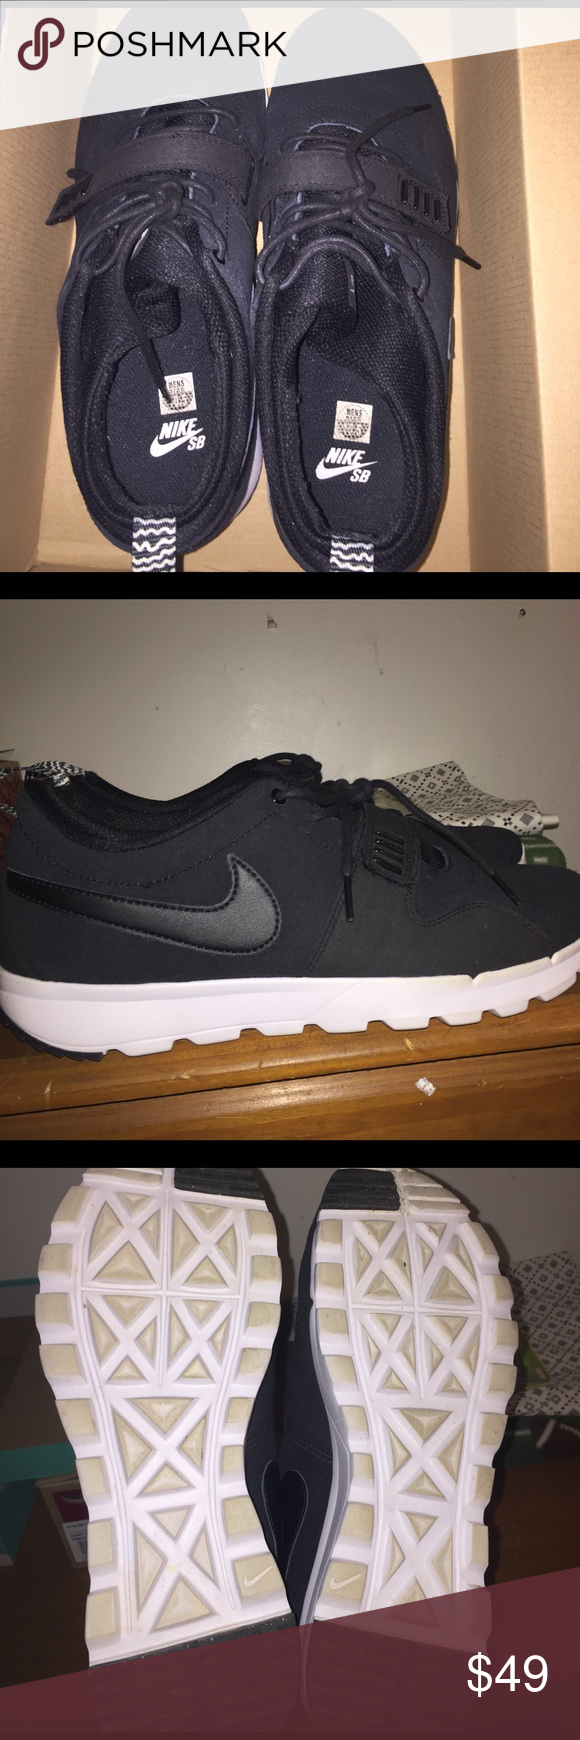 Nike SB Trainerendor Nike leather skateboarding shoe, worn twice and comes with box. Clean and come from good home, great condition! Negotiable!! Nike Shoes Sneakers